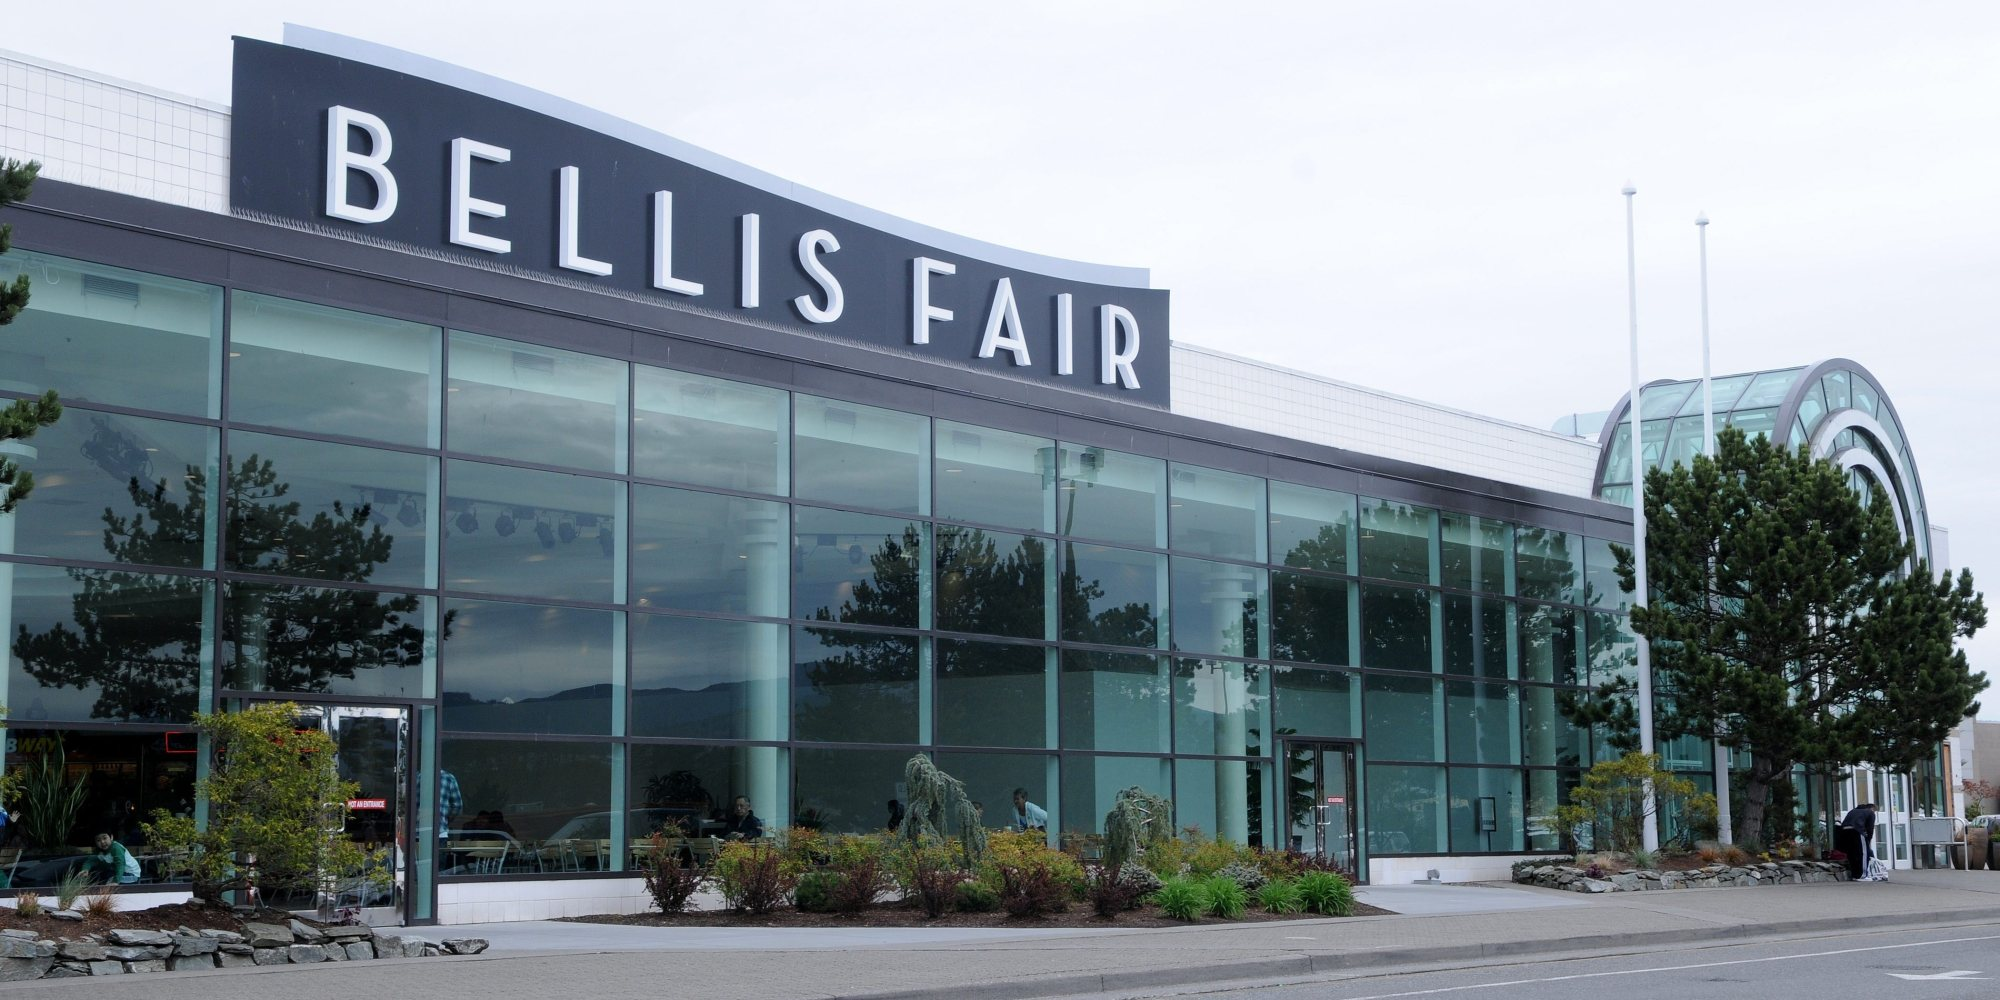 Bellis Fair Mall is your average mid-size mall. Helpful and present security, clean premises, great layout and atmosphere. The food court selection is vast with Subway, Orange Julius, Panda Express, Chipotle, Tcby, Starbucks, and a few others.3/5(53).